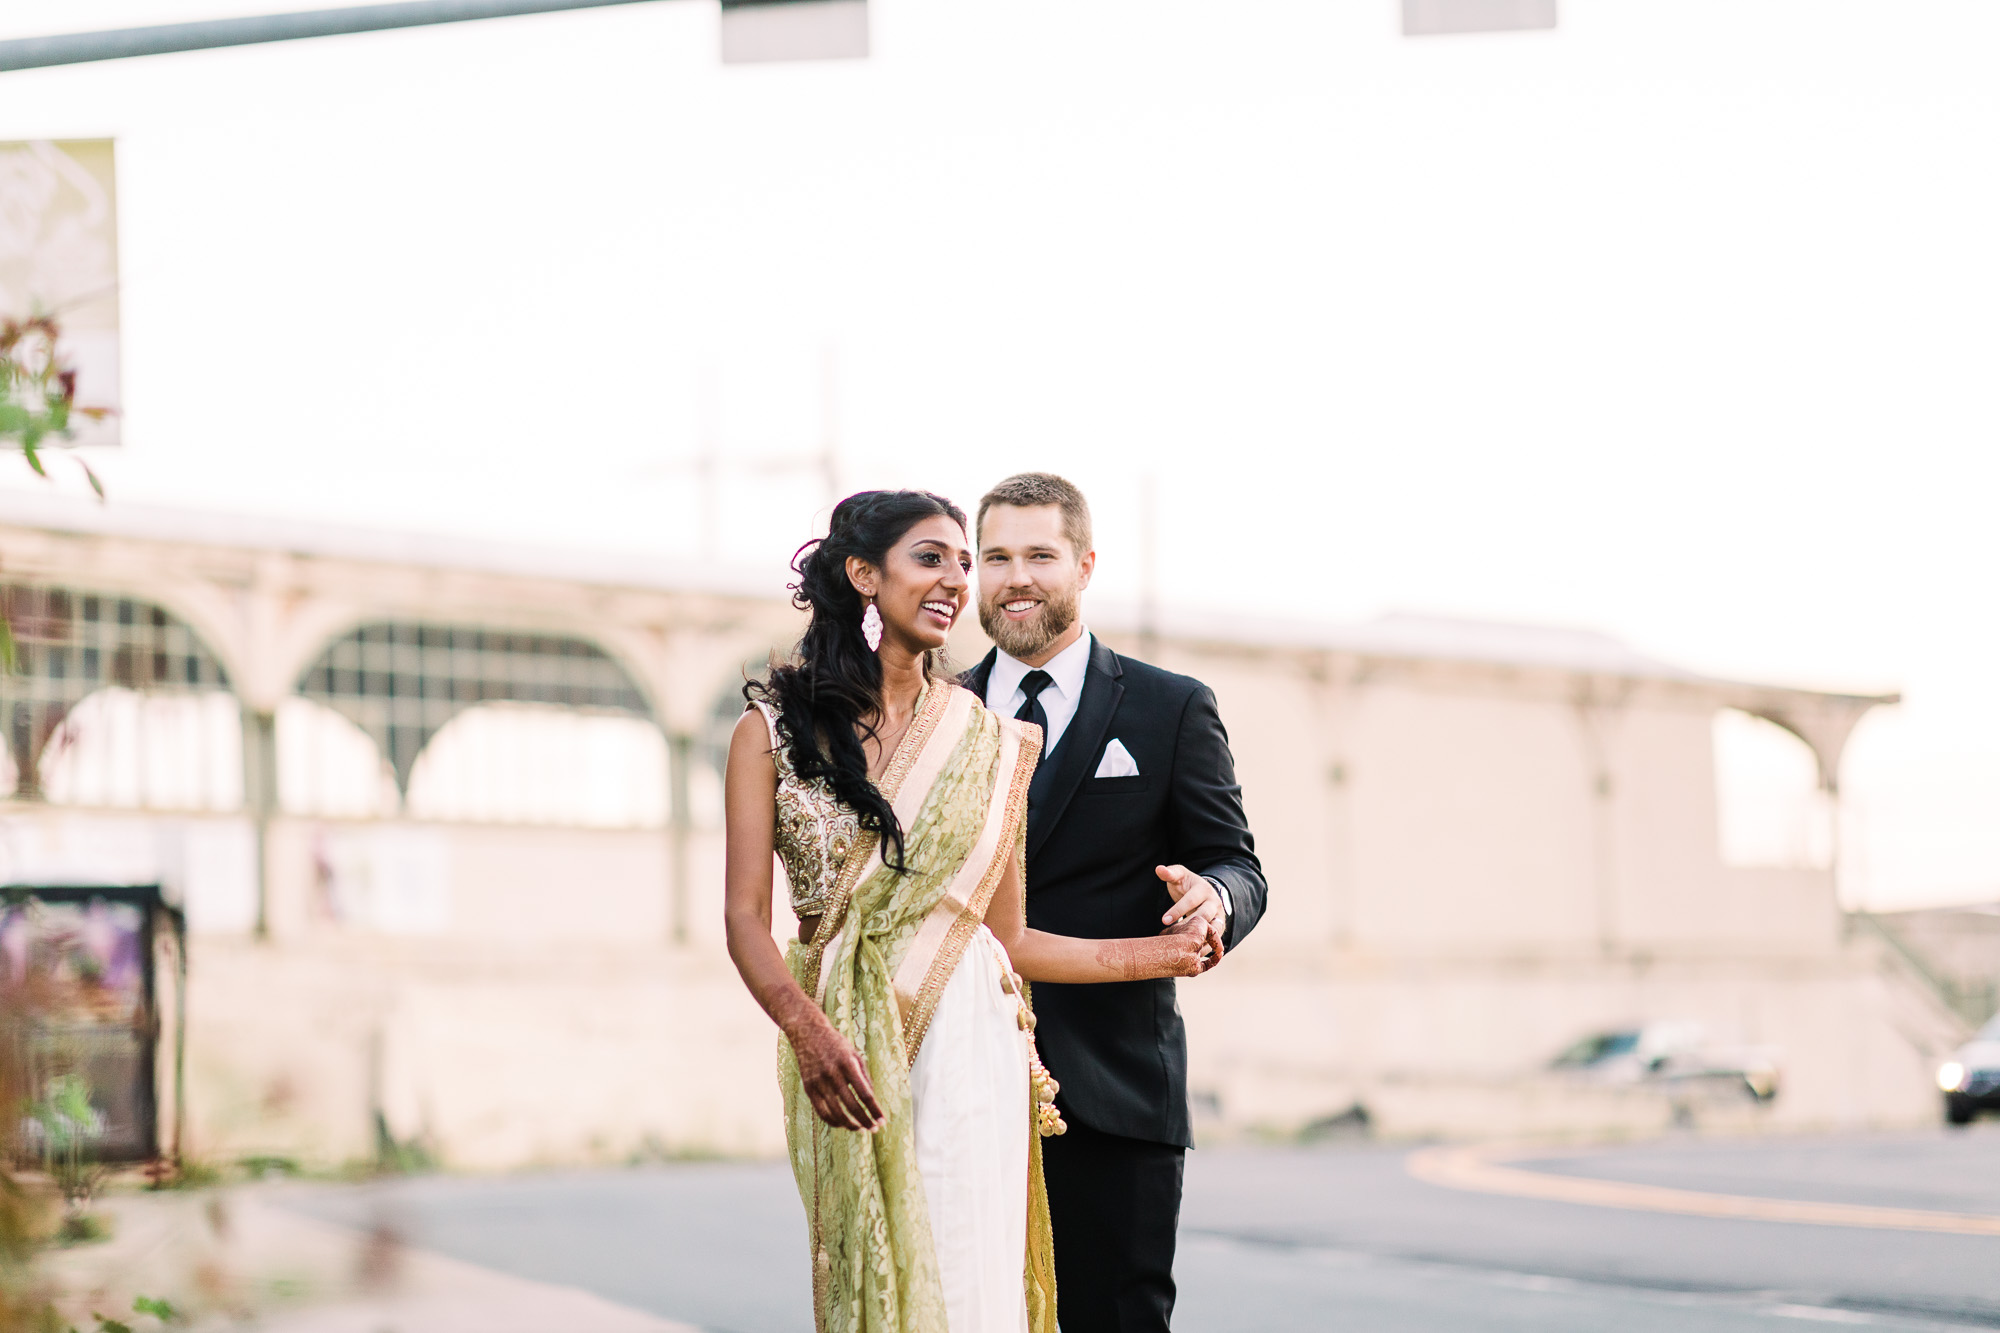 Scranton_Radisson_Hindu_Wedding-7154.jpg